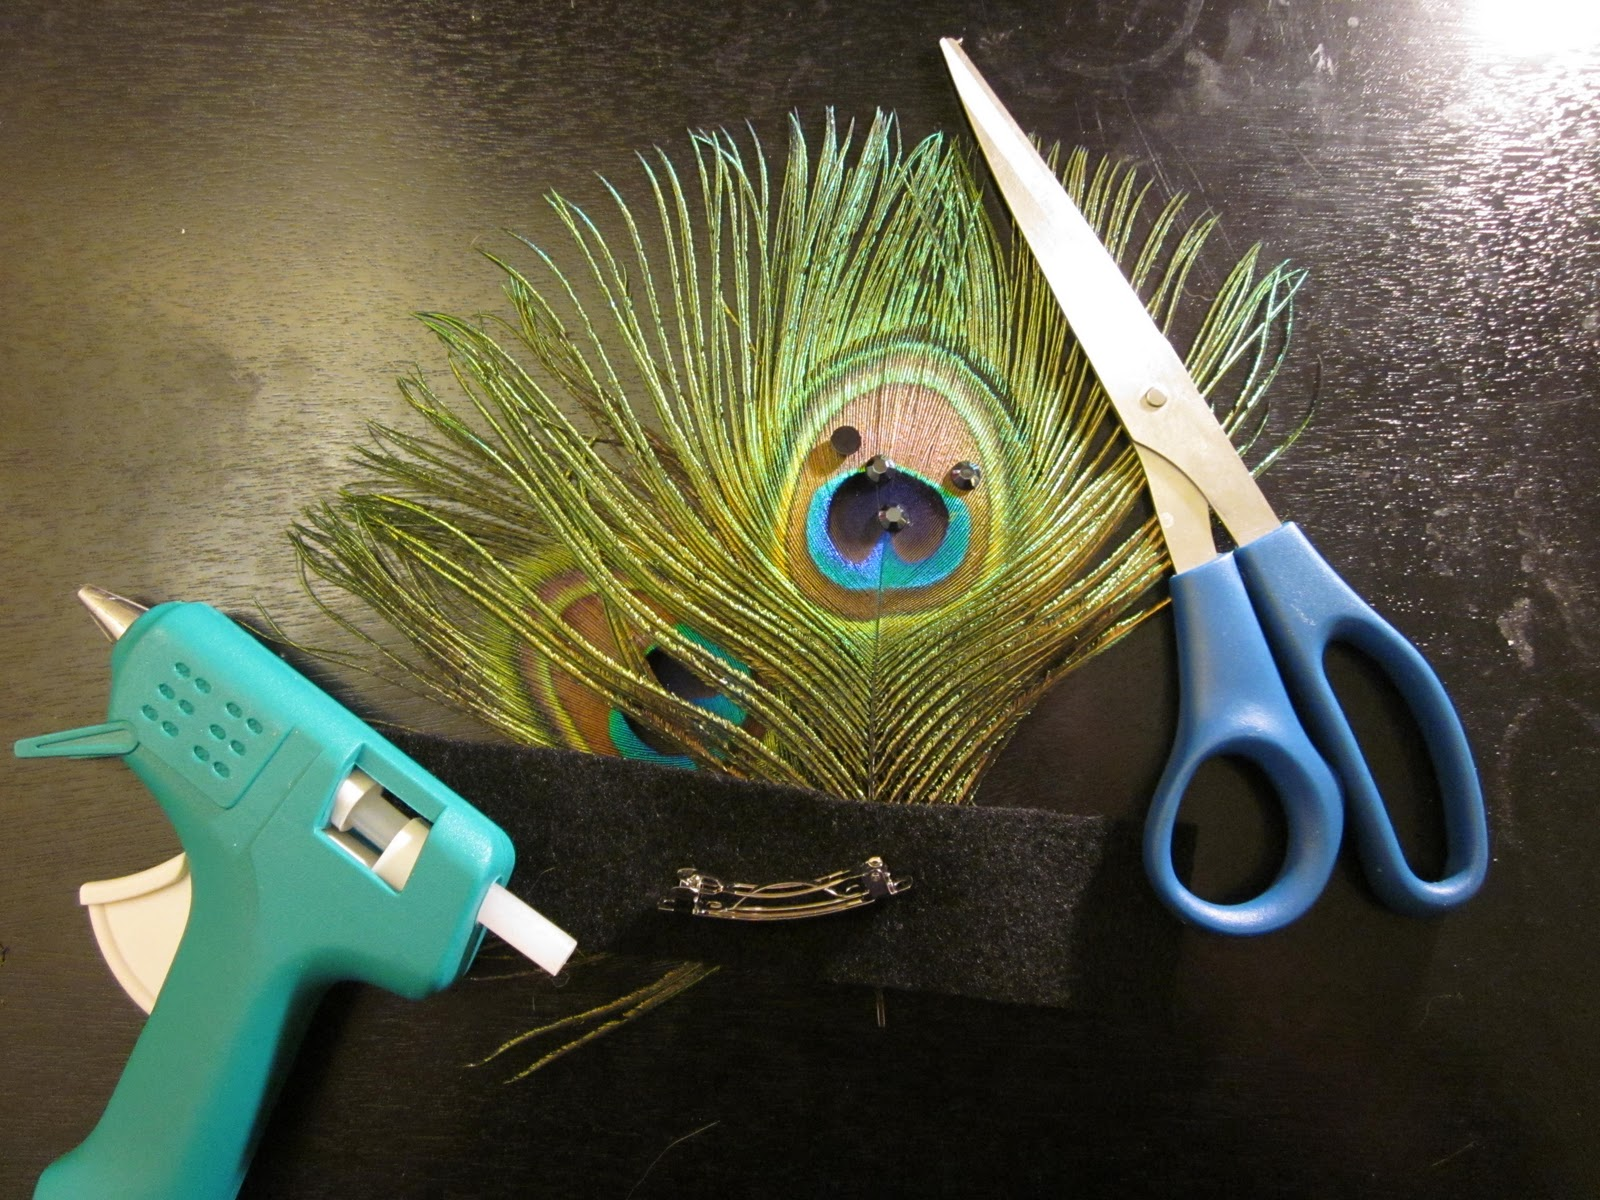 mindafeathers how to make a peacock feather barrette. Black Bedroom Furniture Sets. Home Design Ideas